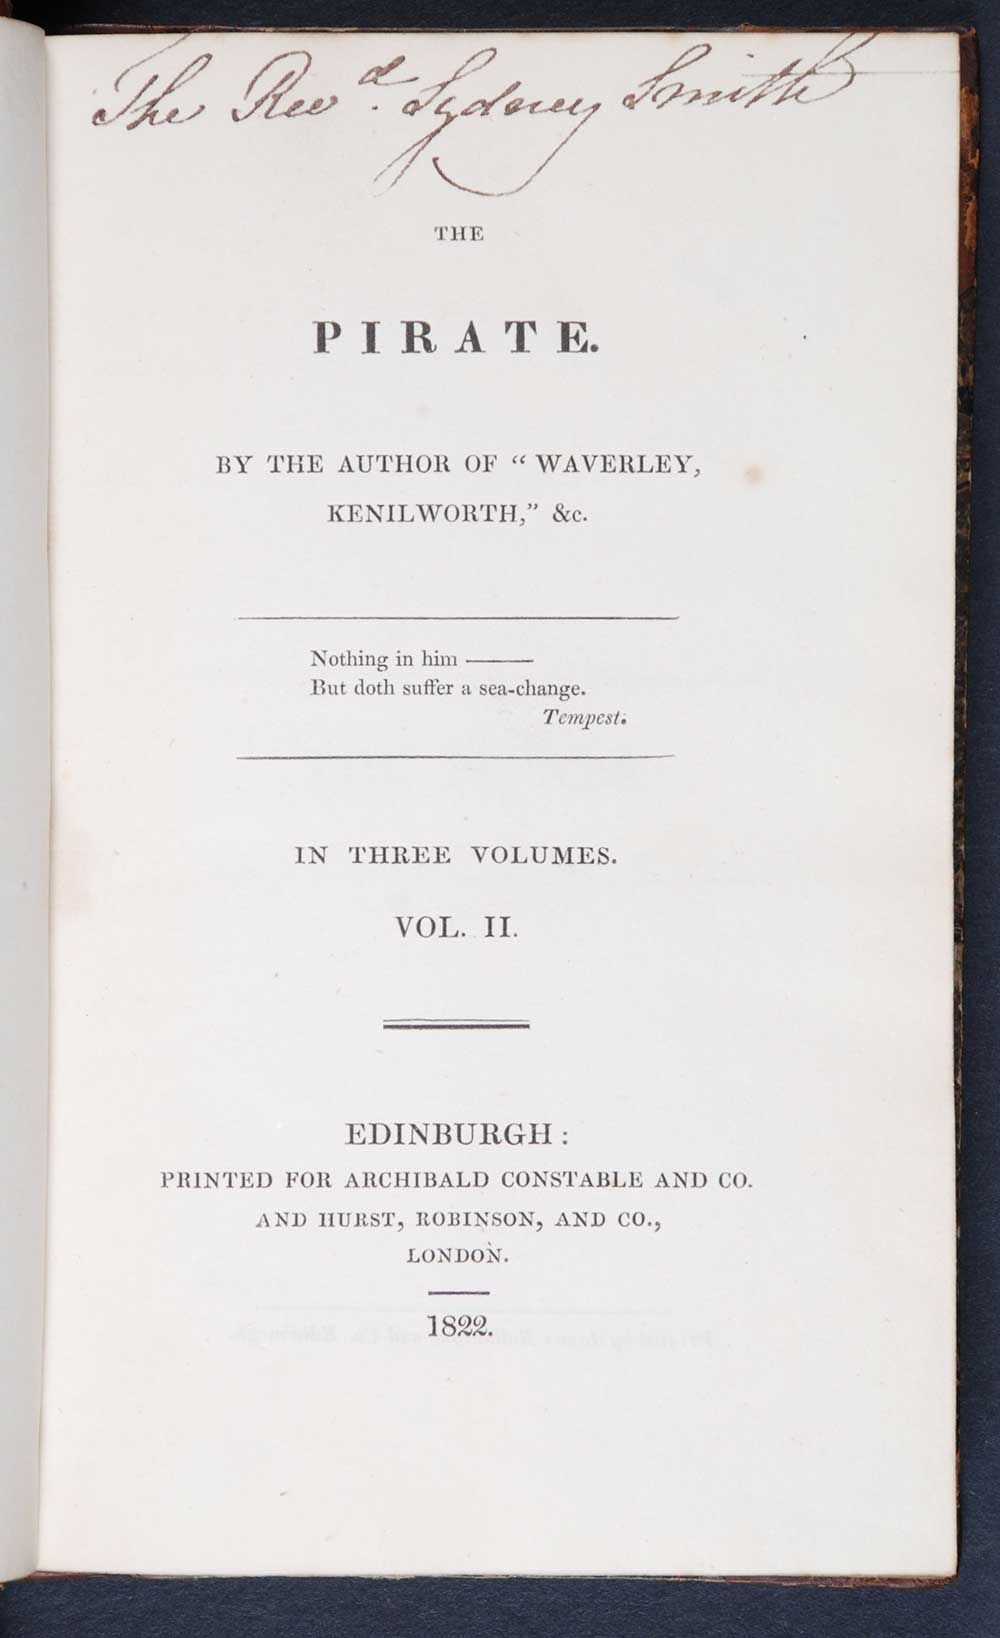 [Sir Walter Scott]. <em>The pirate.</em> [1st edition]. Edinburgh: Printed for Archibald Constable and Co.; and Hurst, Robinson and Co., London, 1822. Three volumes; Vol. 2 displayed.